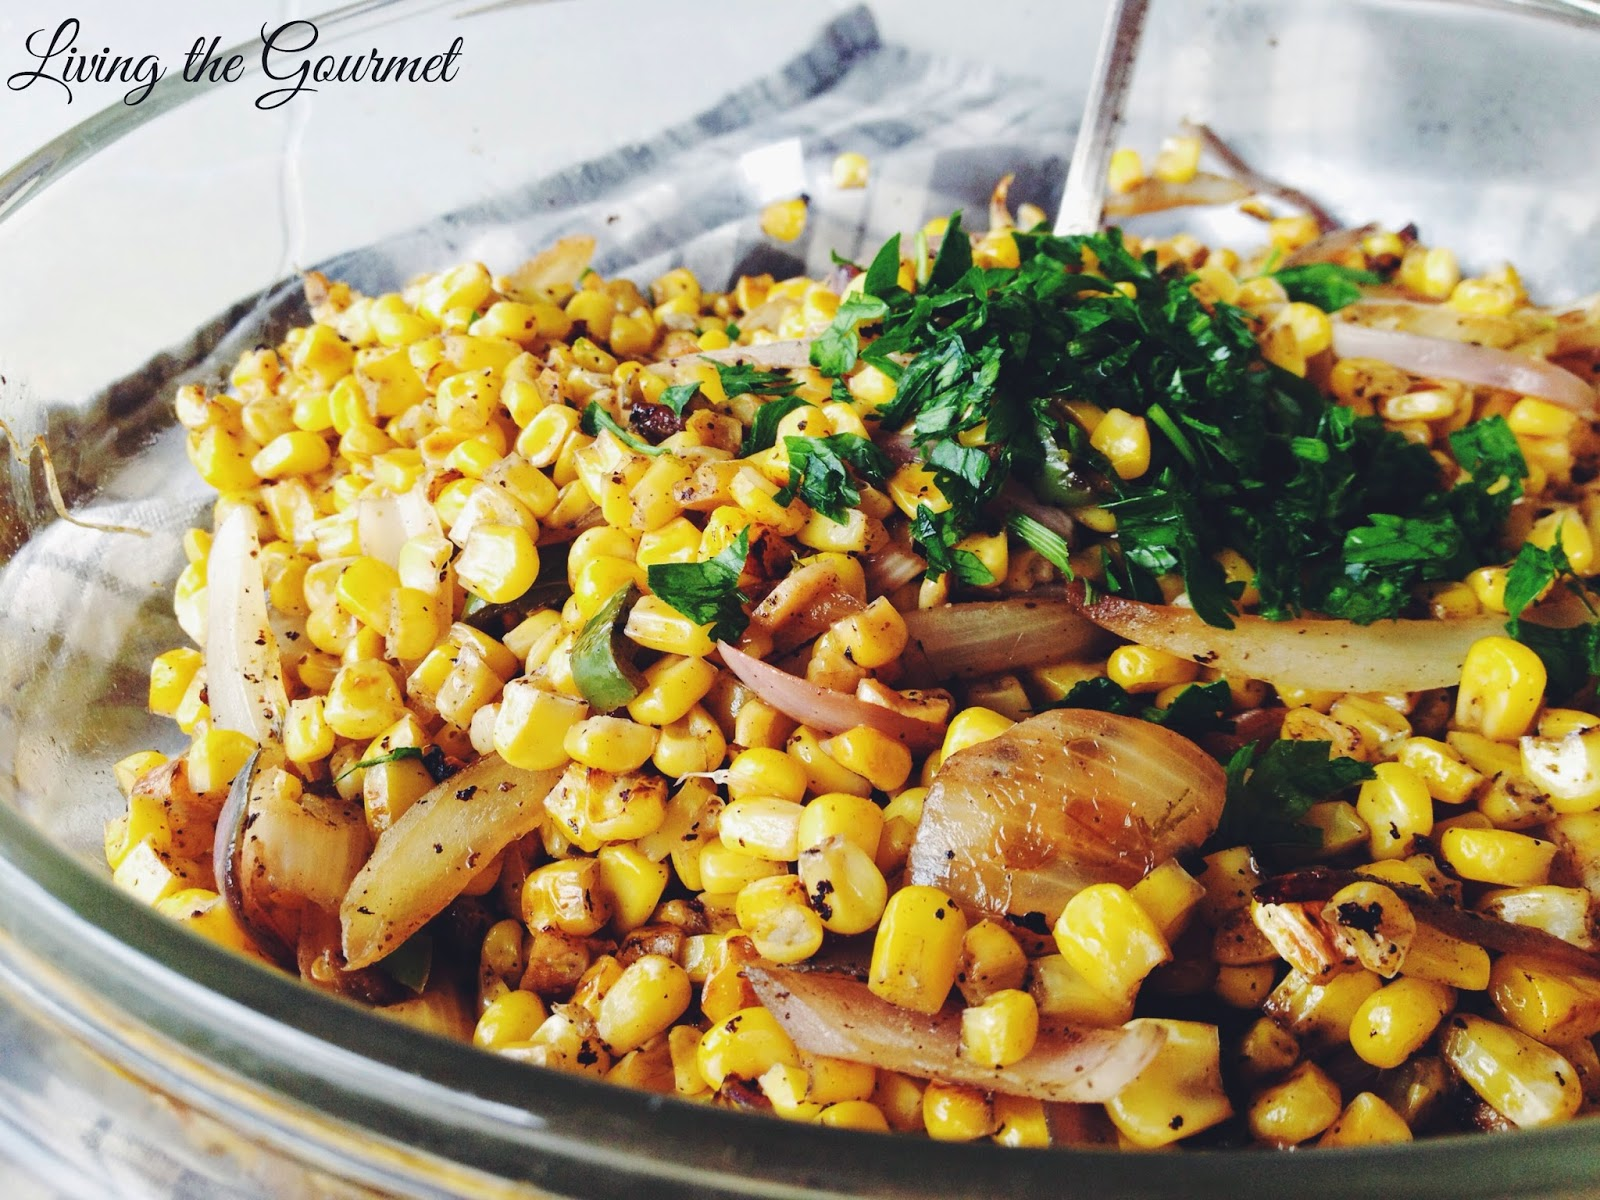 Living the Gourmet: 4th of July Recipe Roundup